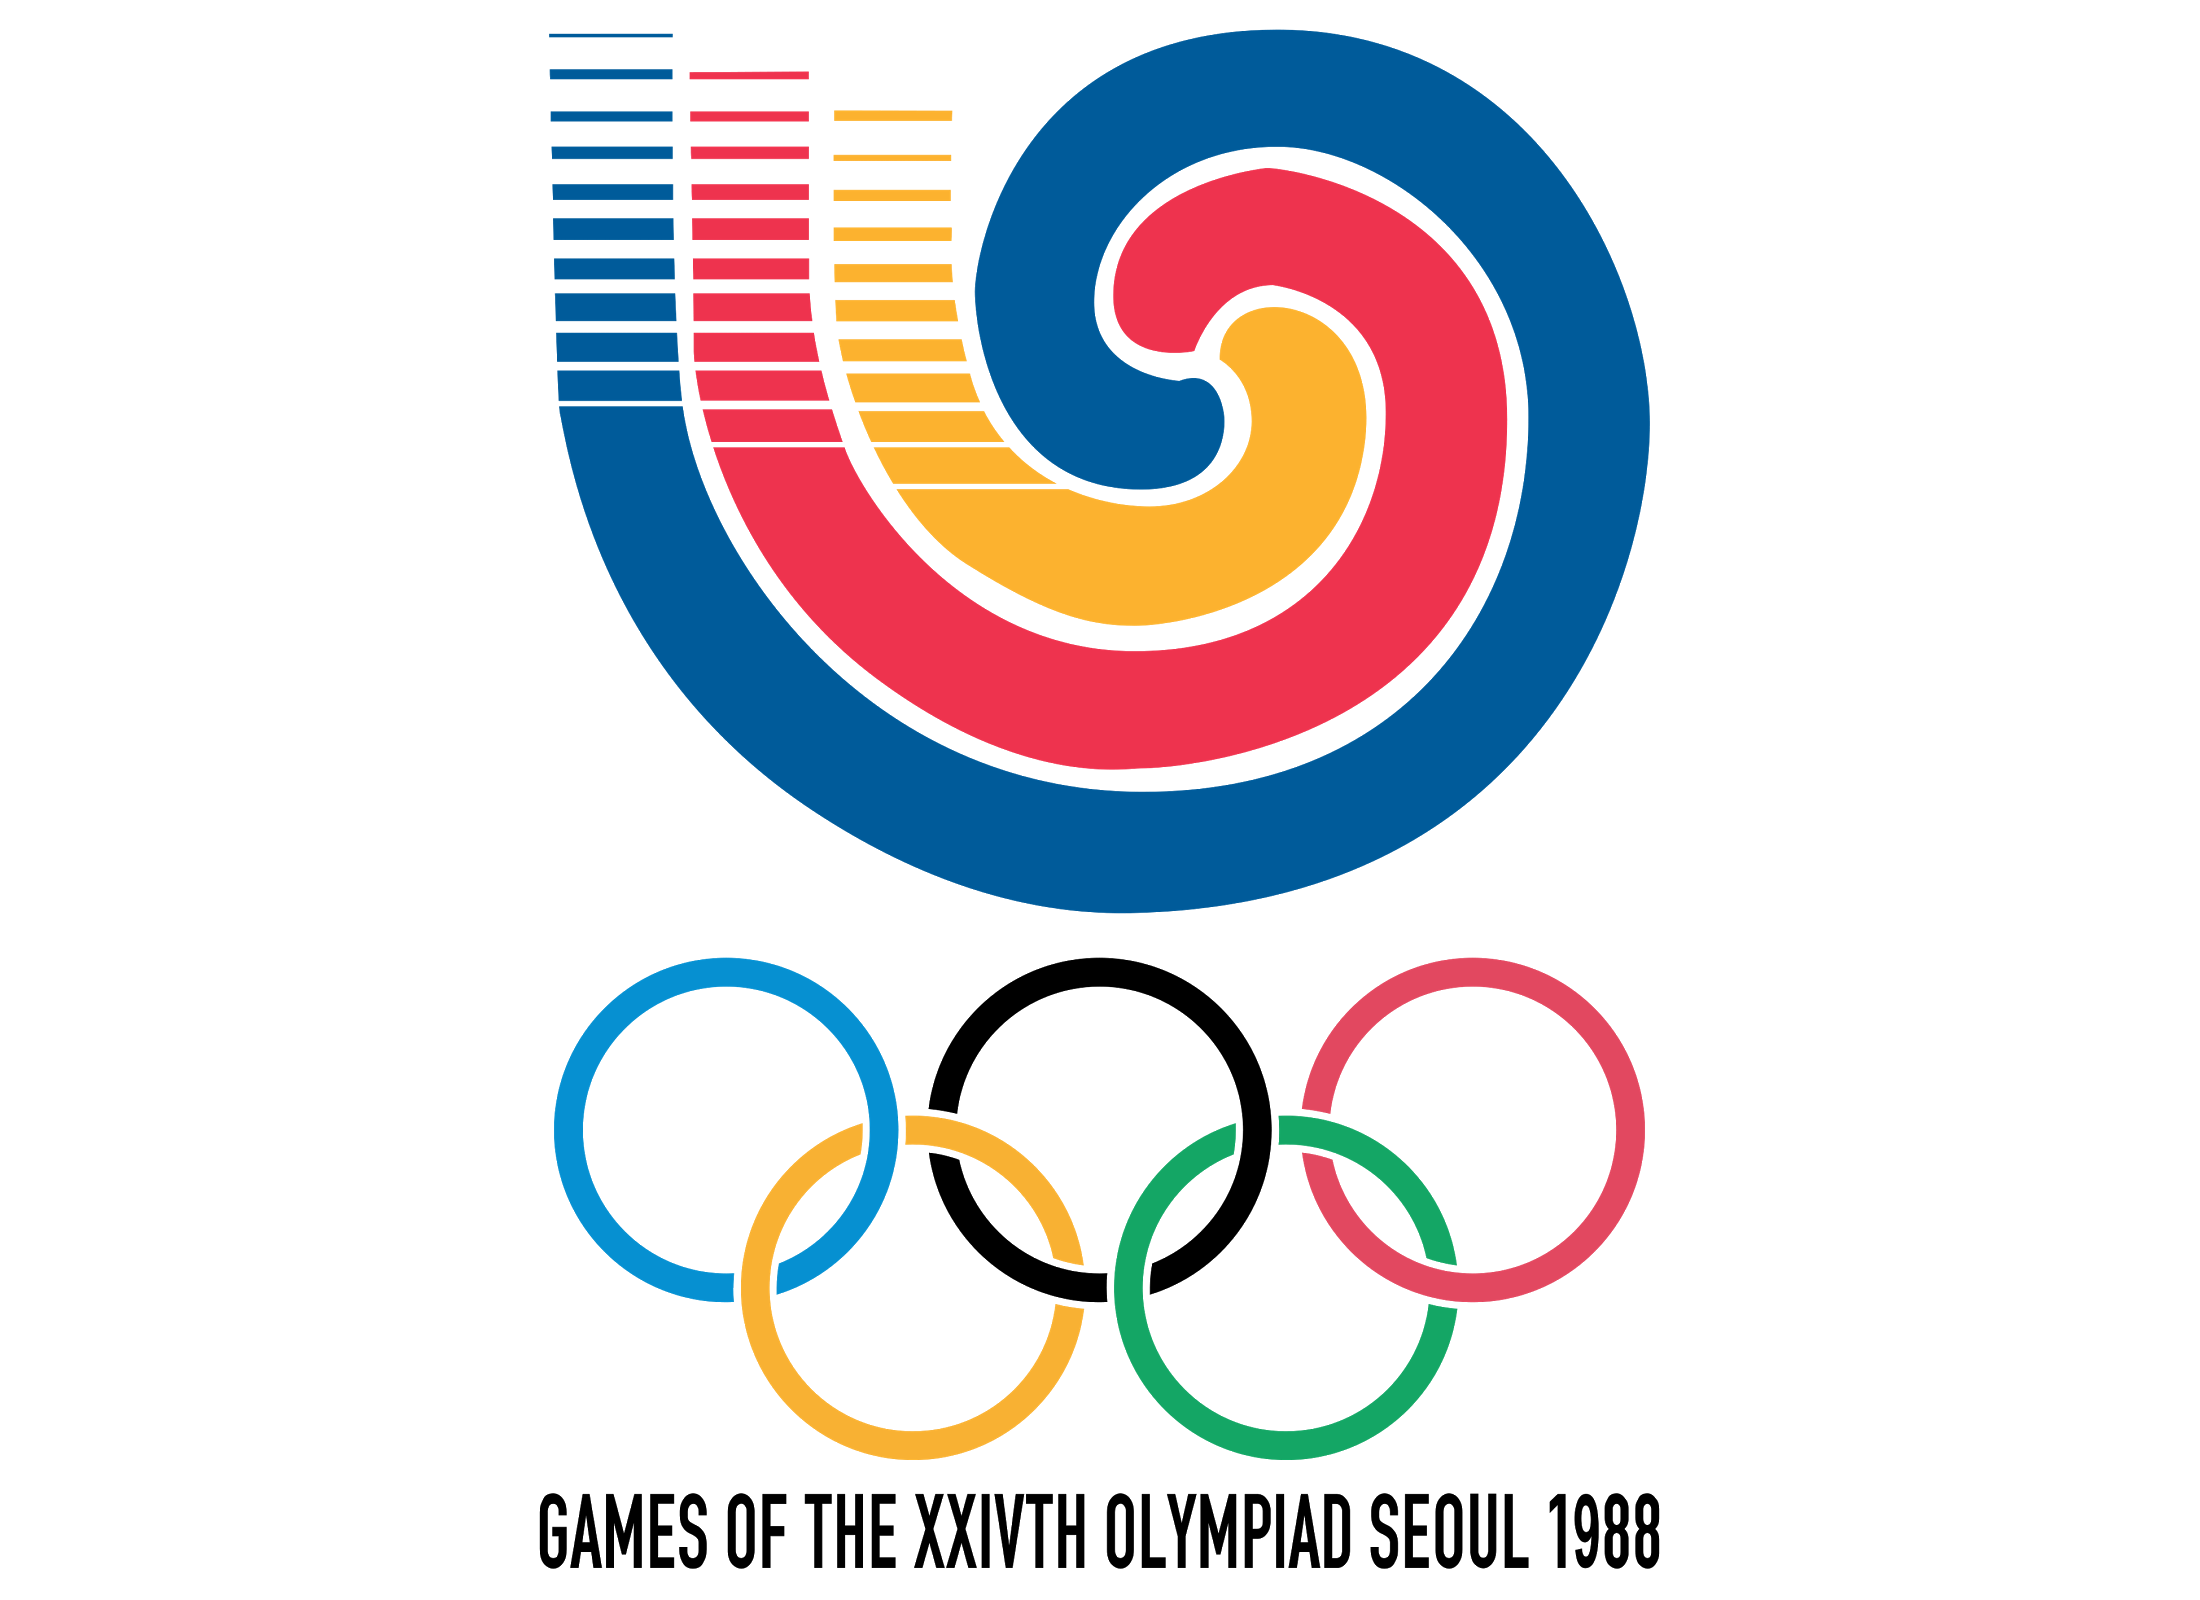 45 Olympic Logos and Symbols From 1924 to 2022.